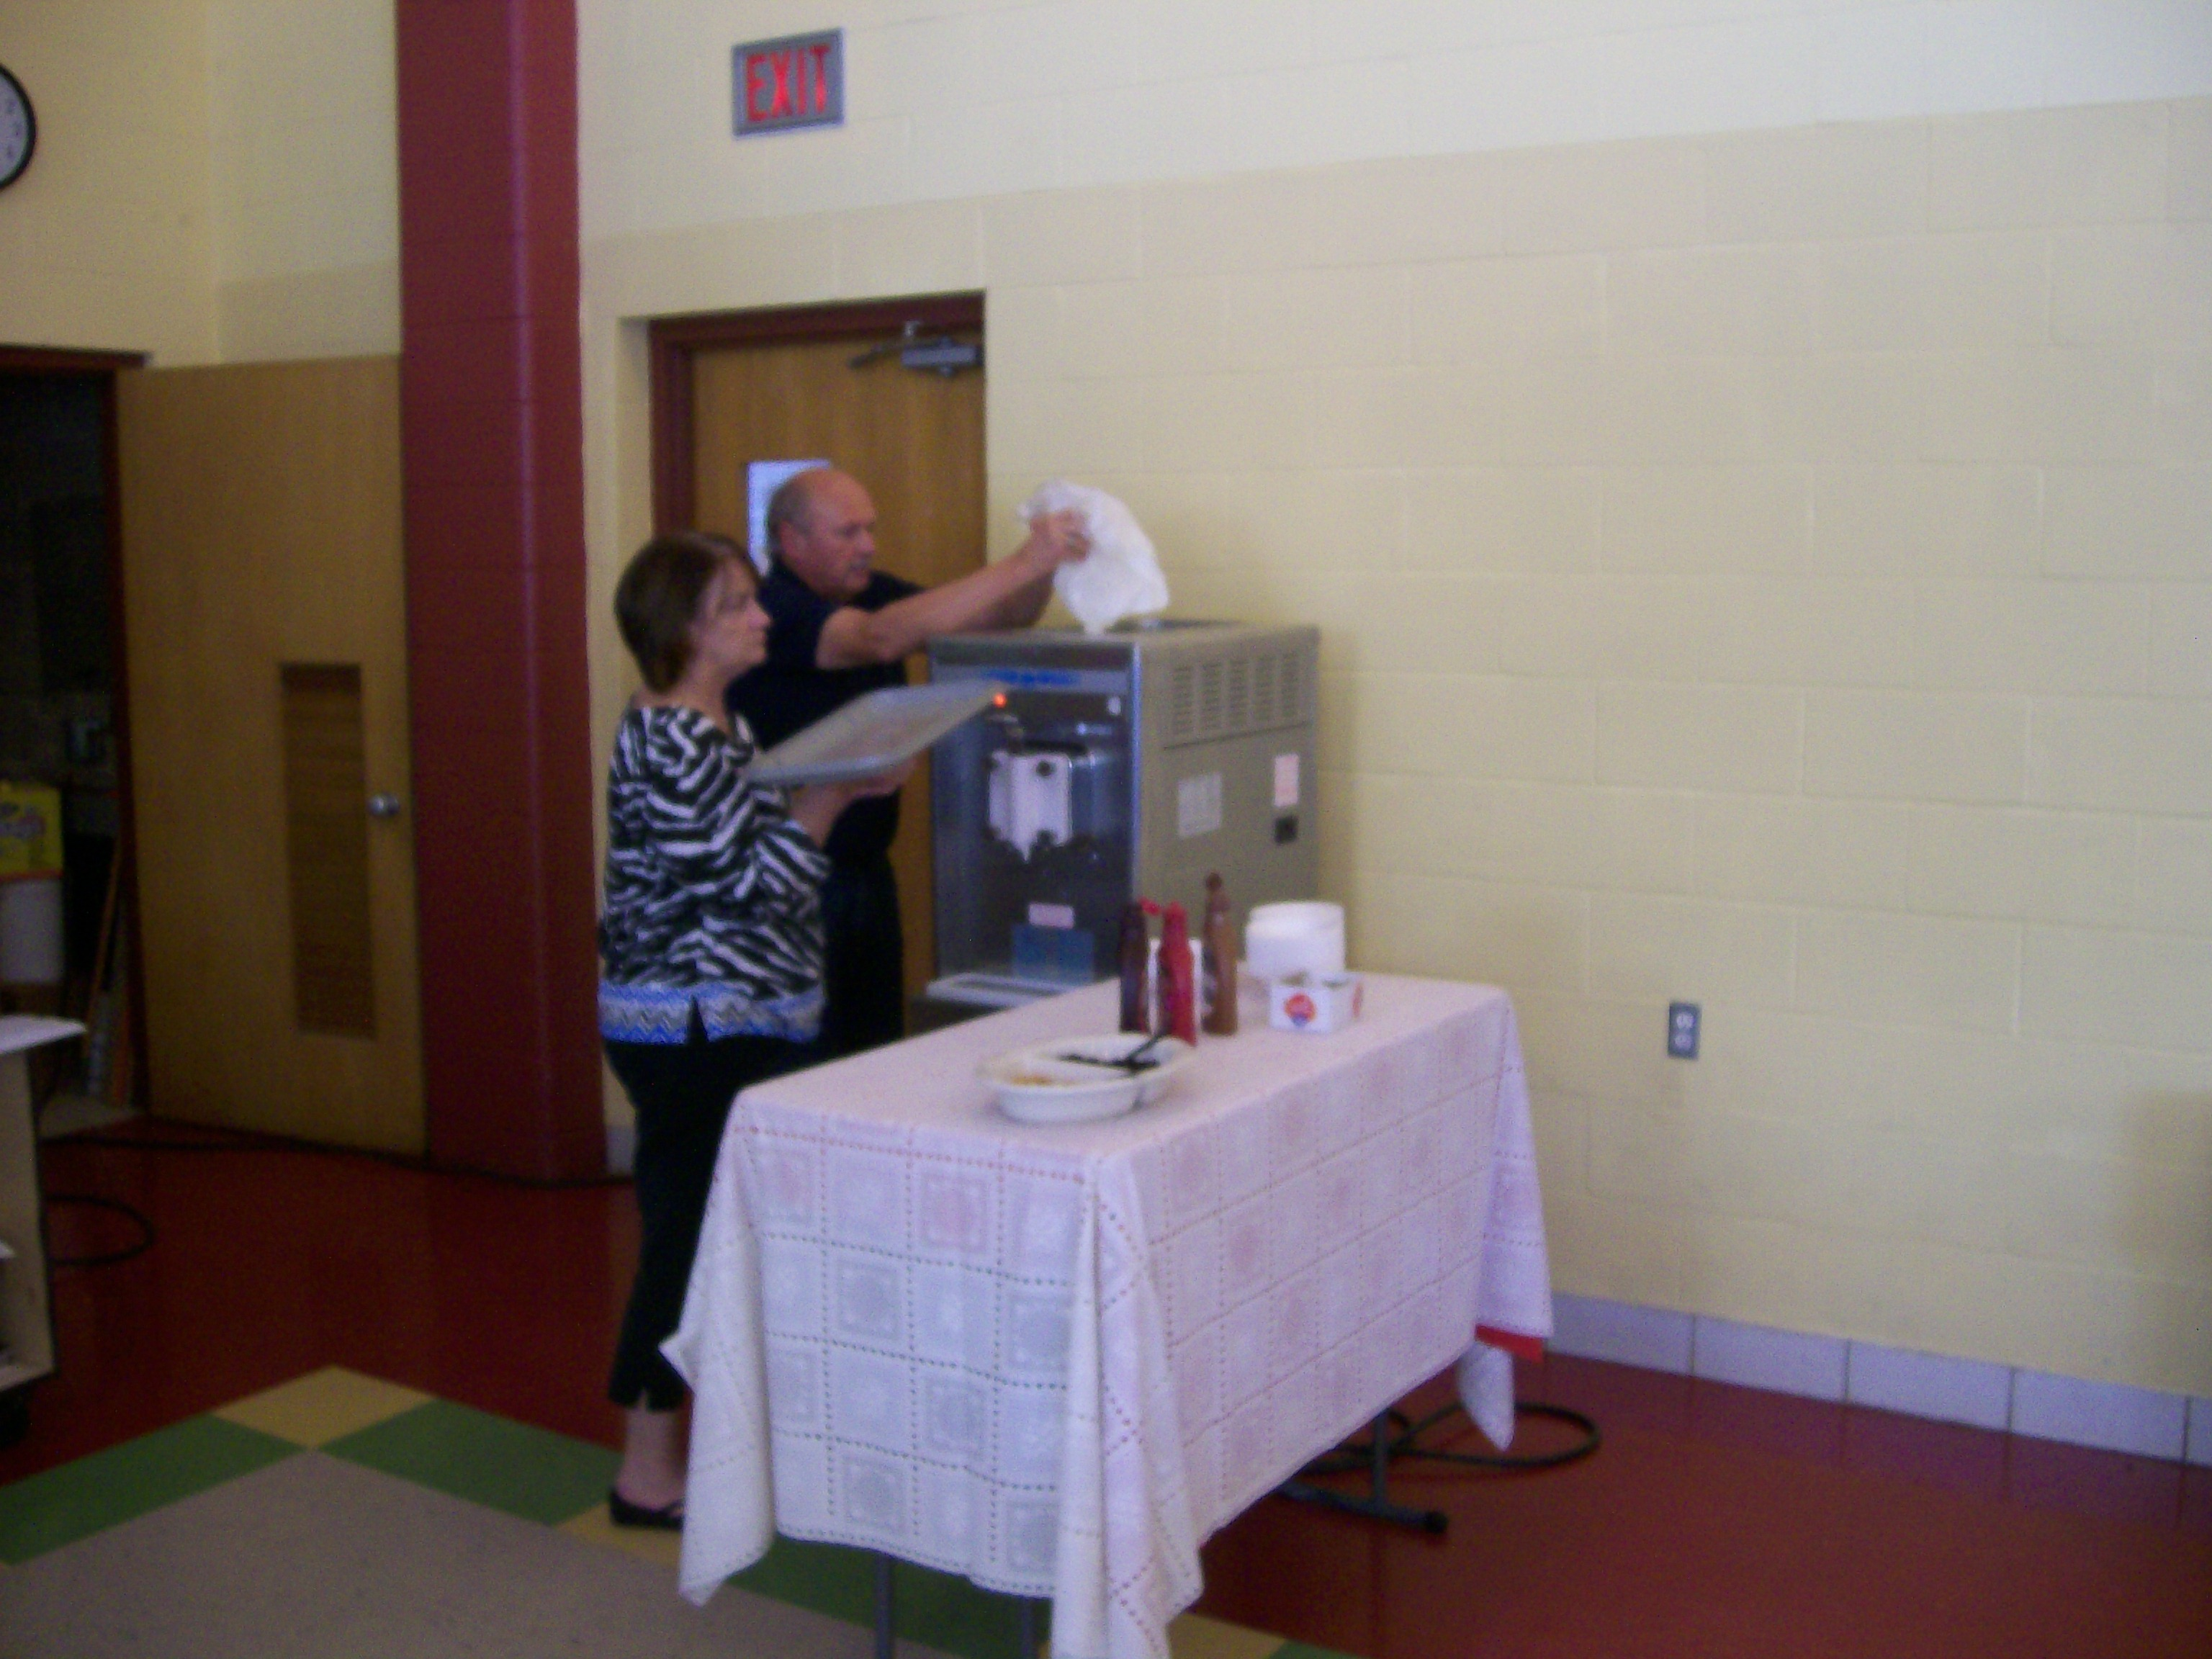 Volunteers filling the Soft Serve Ice Cream Machine - Yum Yum